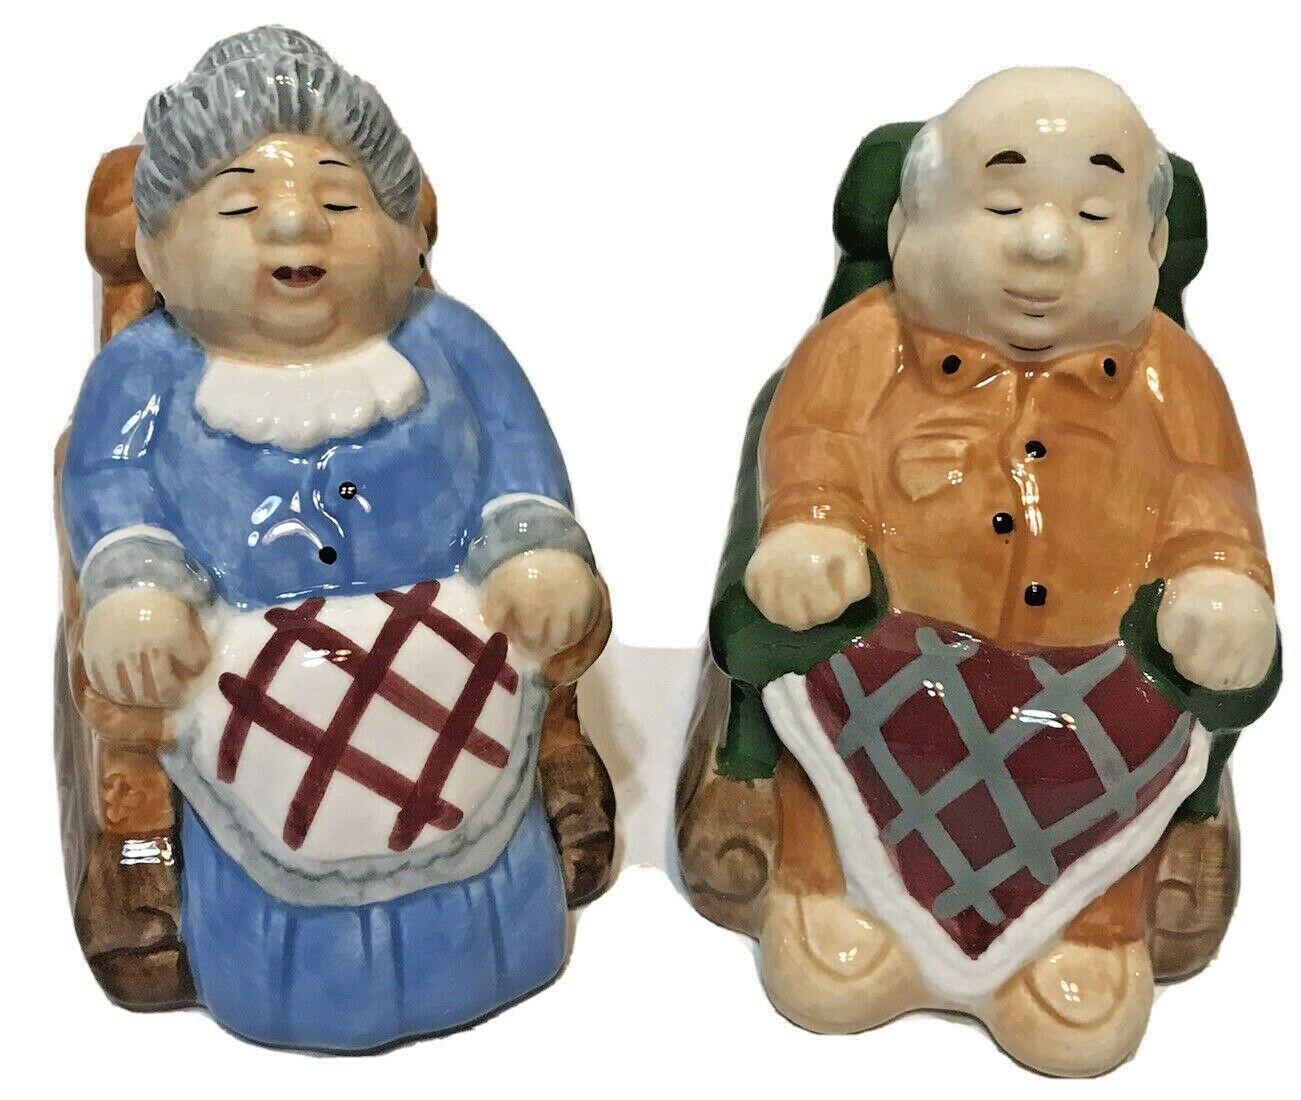 Fitz and Floyd Warm N' Cozy Movers and Shakers Salt and Pepper Shakers Vintage  - $15.57